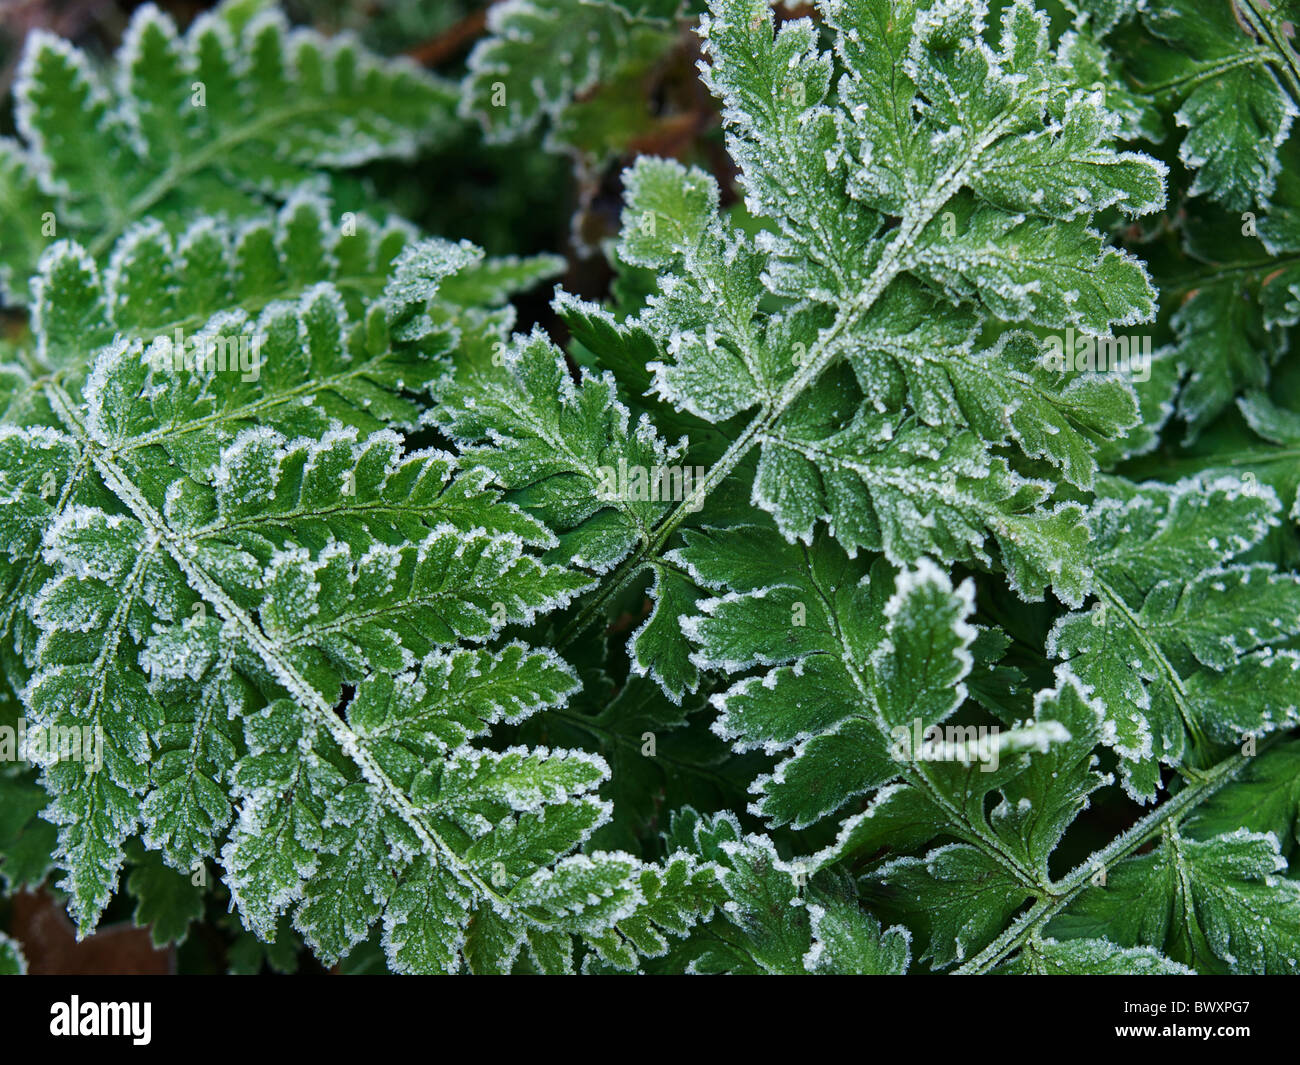 Frosty fern leaves closeup with ice crystals, Dorst, Noord Brabant, the Netherlands - Stock Image